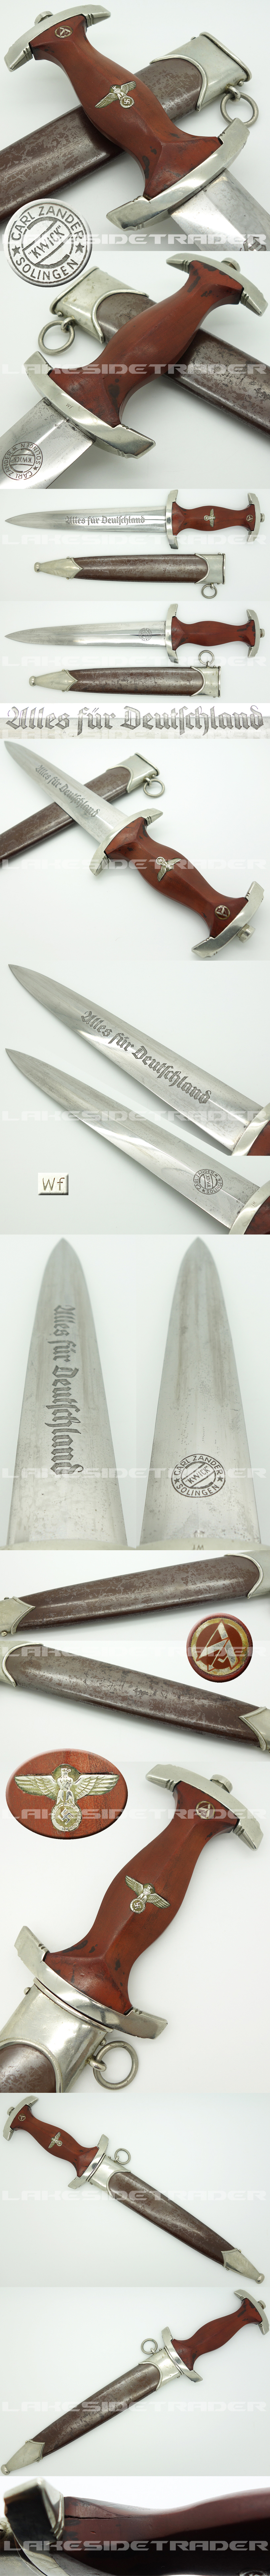 Rare Early SA Dagger by Carl Zander